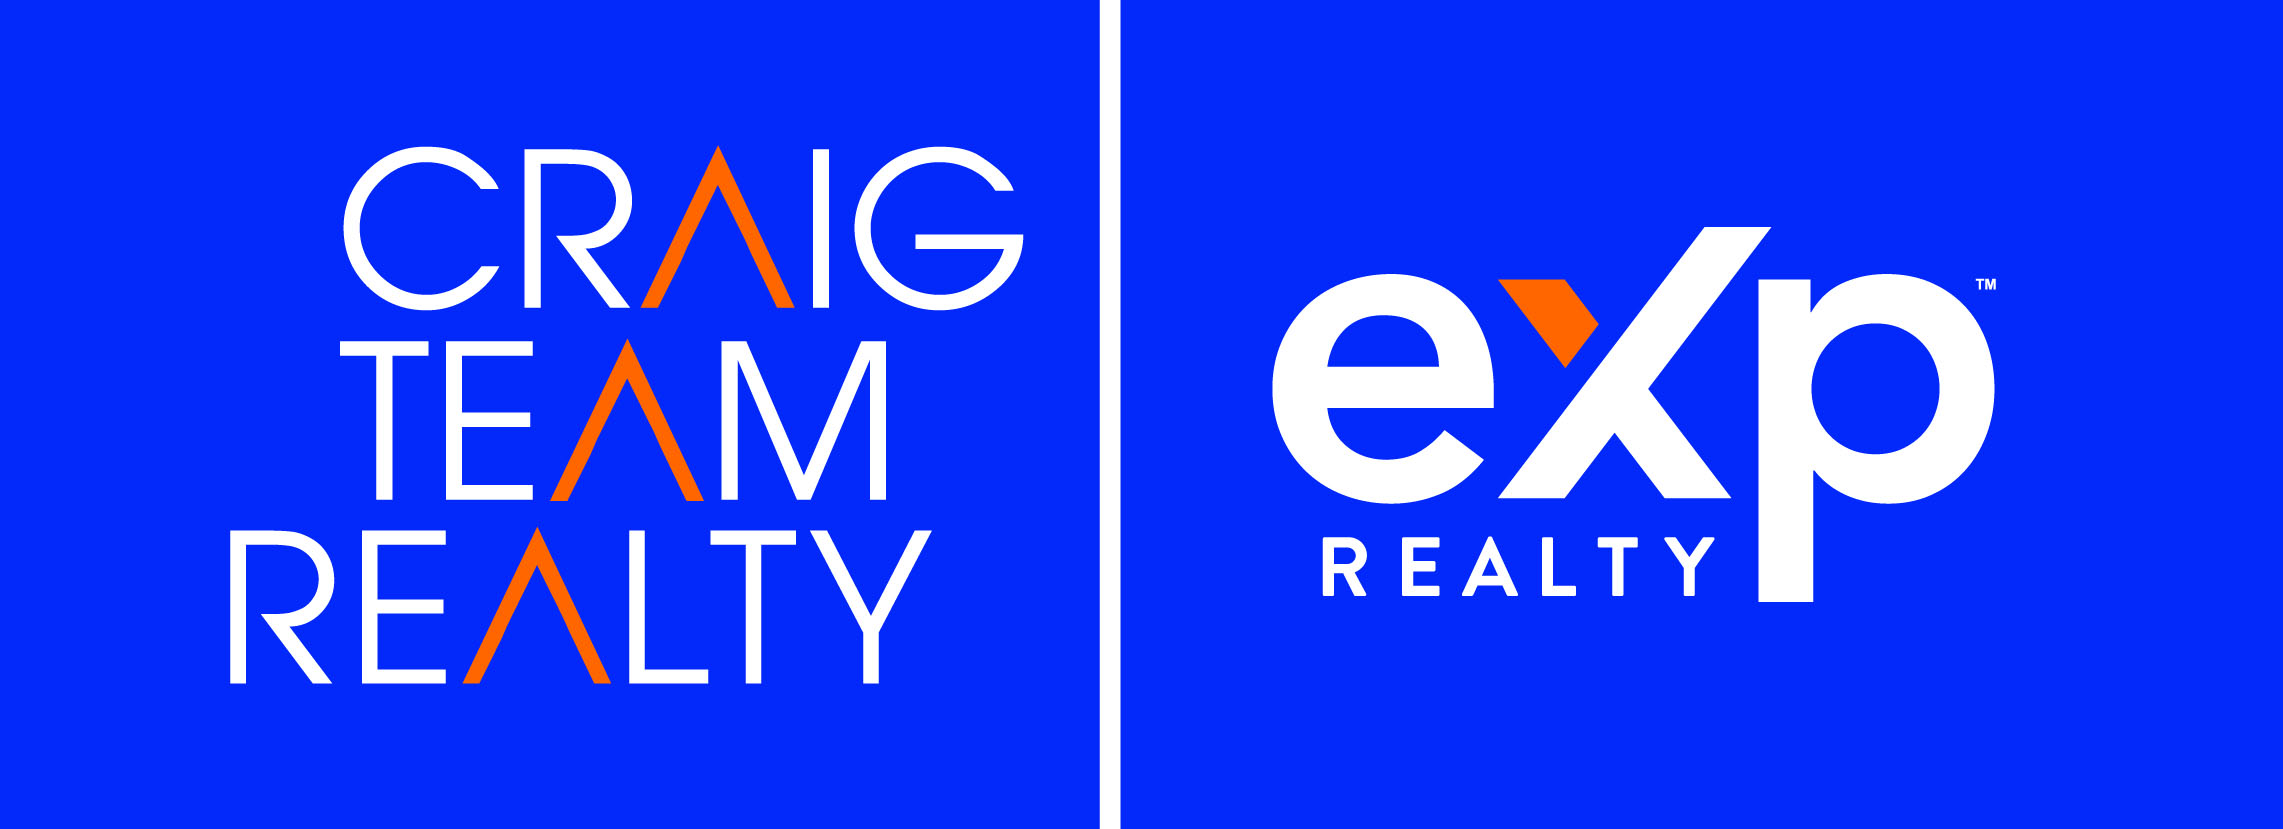 Craig Team Realty, Powered by eXp